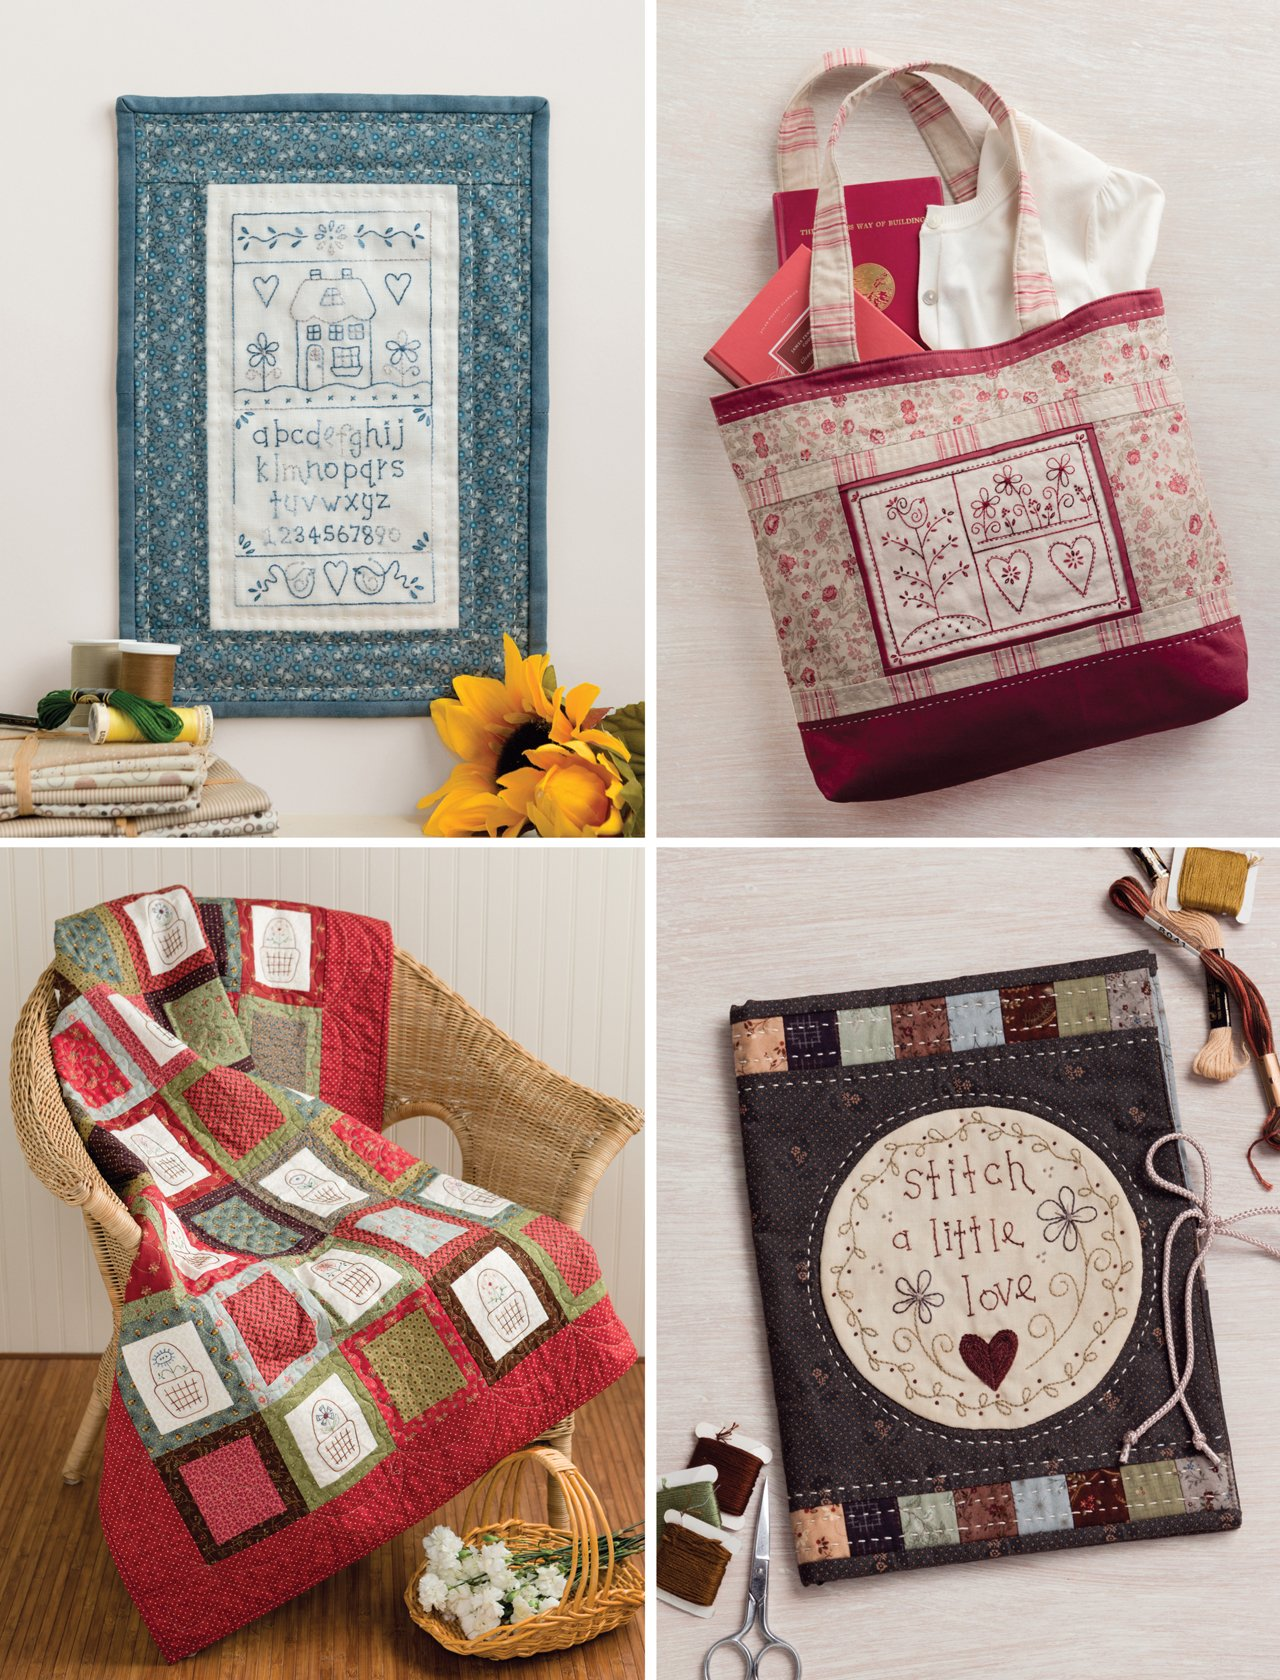 Patchwork Loves Embroidery: Hand Stitches, Pretty Projects by That Patchwork Place (Image #3)